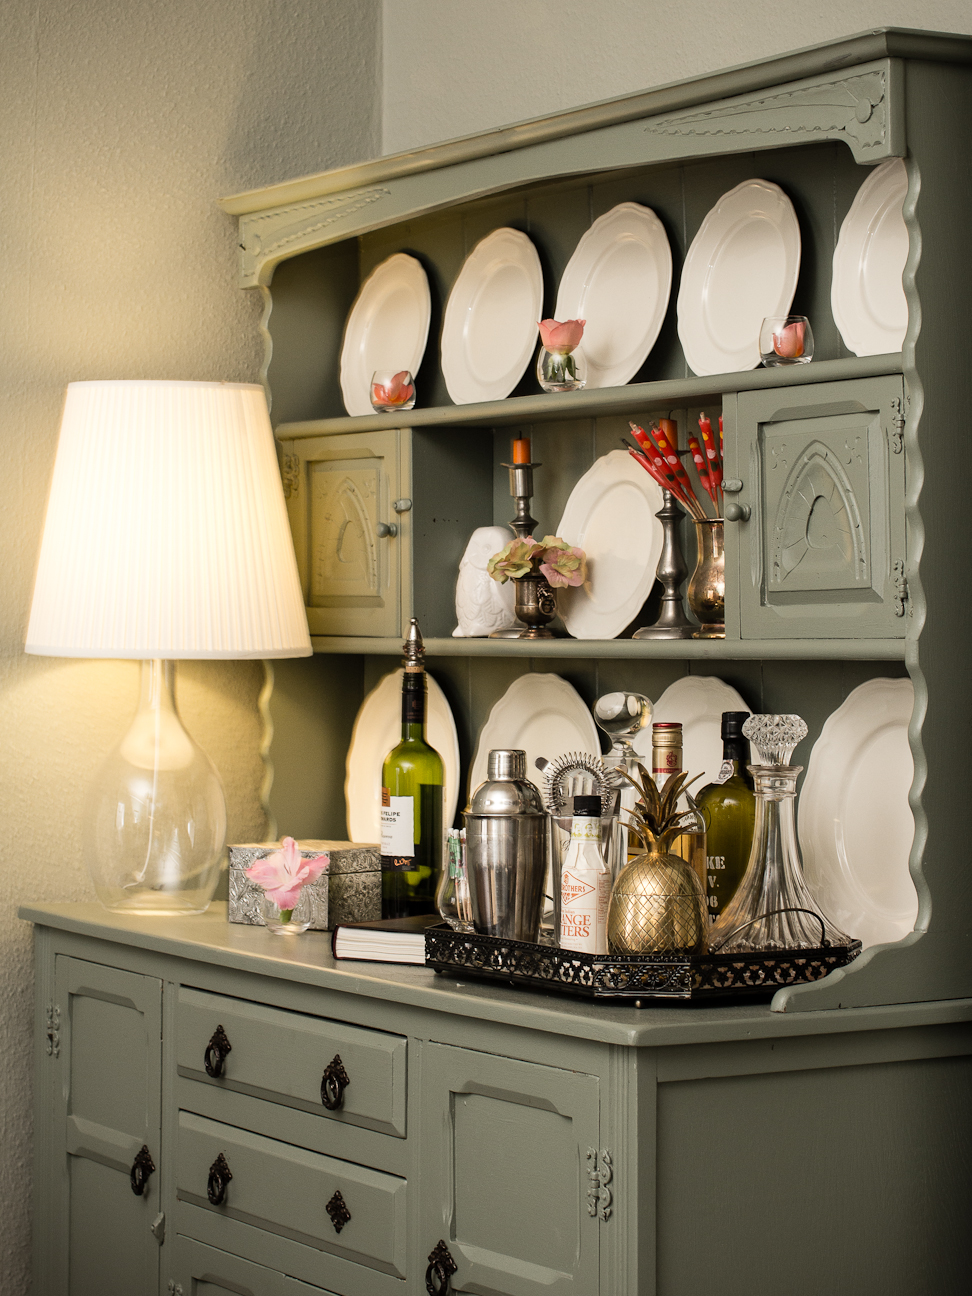 How to Style a Welsh Dresser by Carole Poirot | The Oak